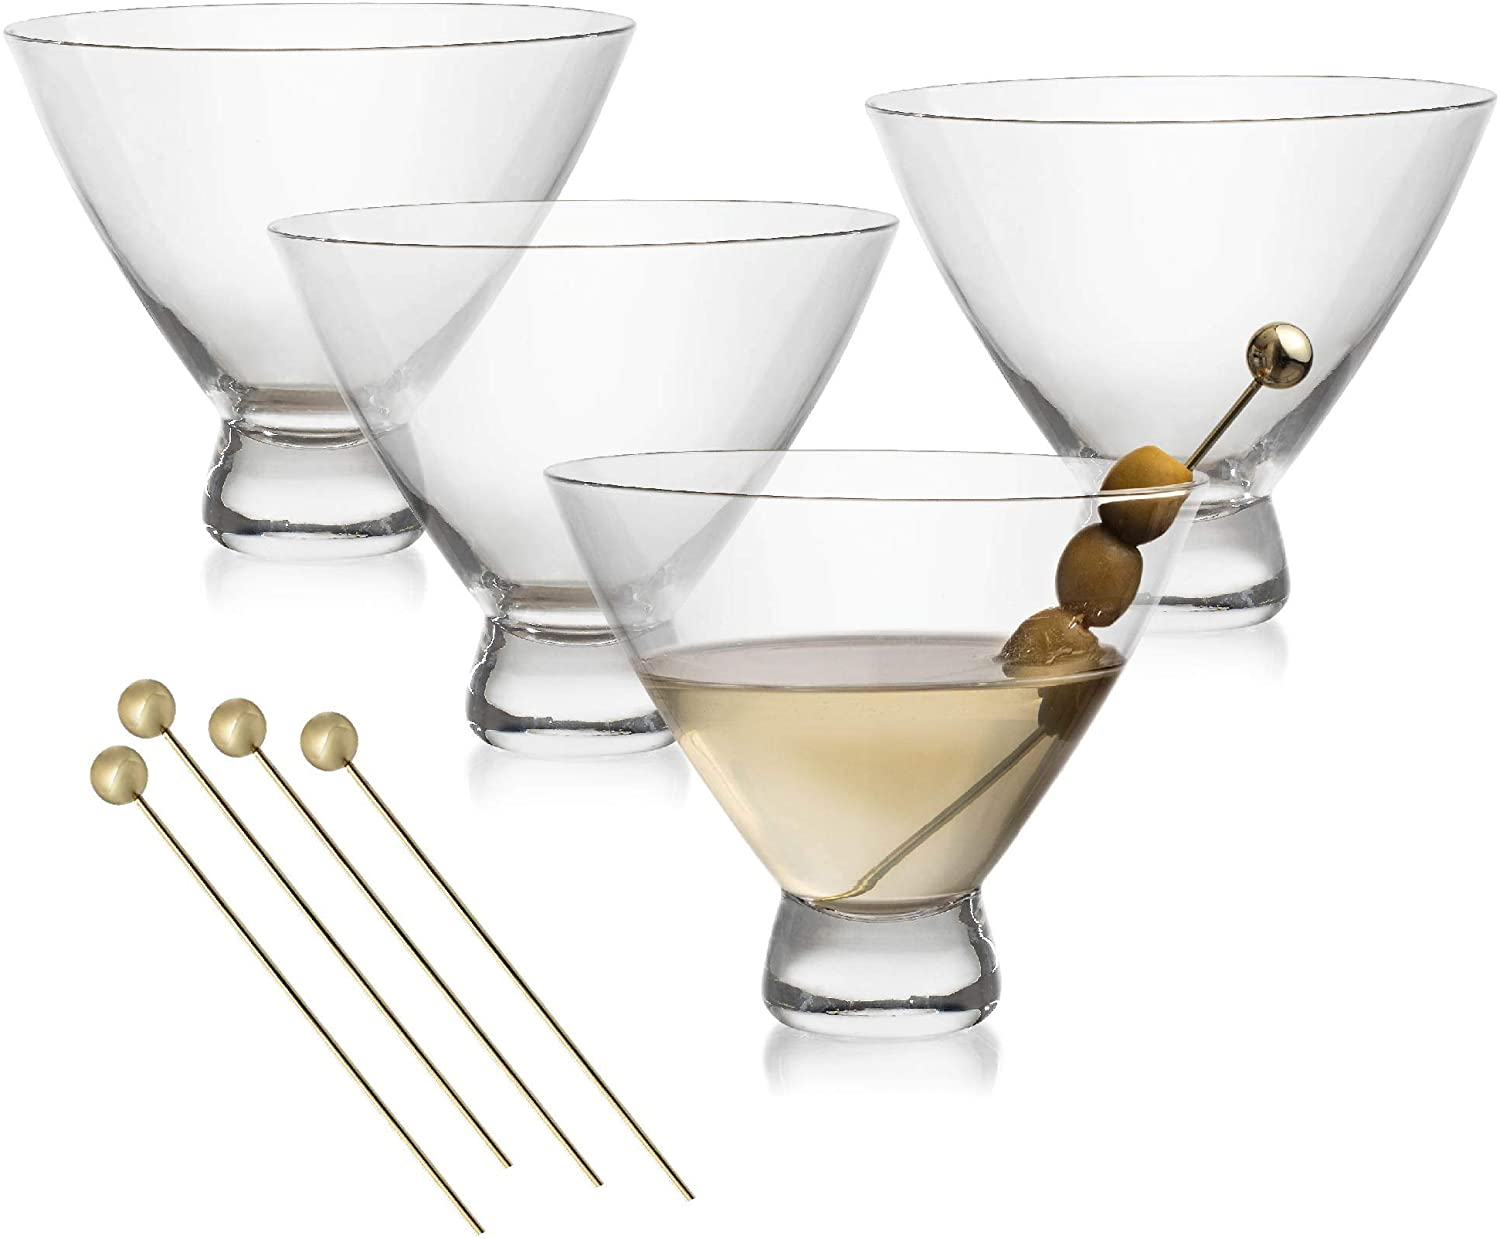 Stemless 10 Oz. Cocktail and Martini Glasses Set – 4 Crystal Wine Glasses with 4 Gold-Plated Picks – Lead-Free, Handmade Bar Cart Supplies and Tools by Lumi & Numi, 4.3x3.7 In.